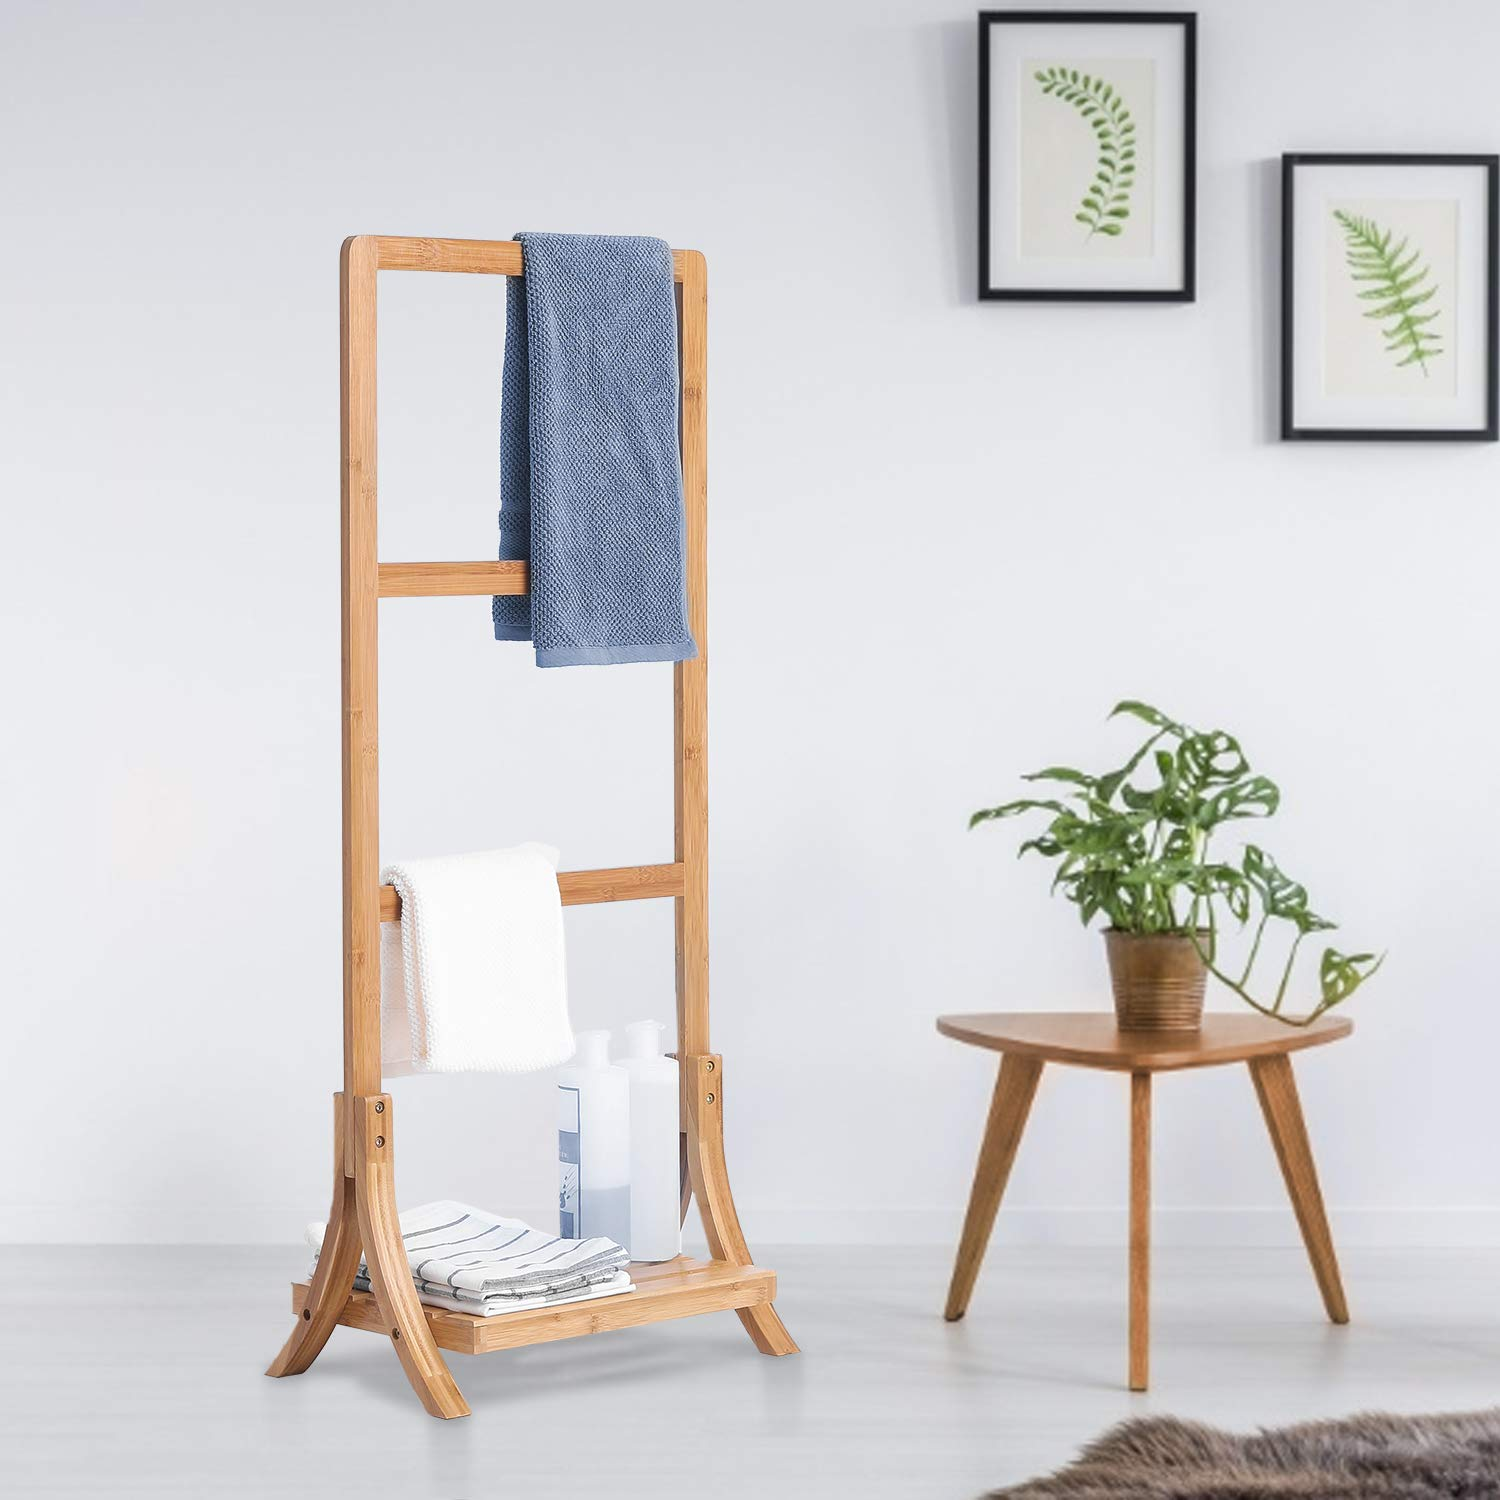 Greenvelly Towel Rack Stand Bamboo Freestanding 3-Bar Hand Towel Drying Rack for Bathroom with Shelf